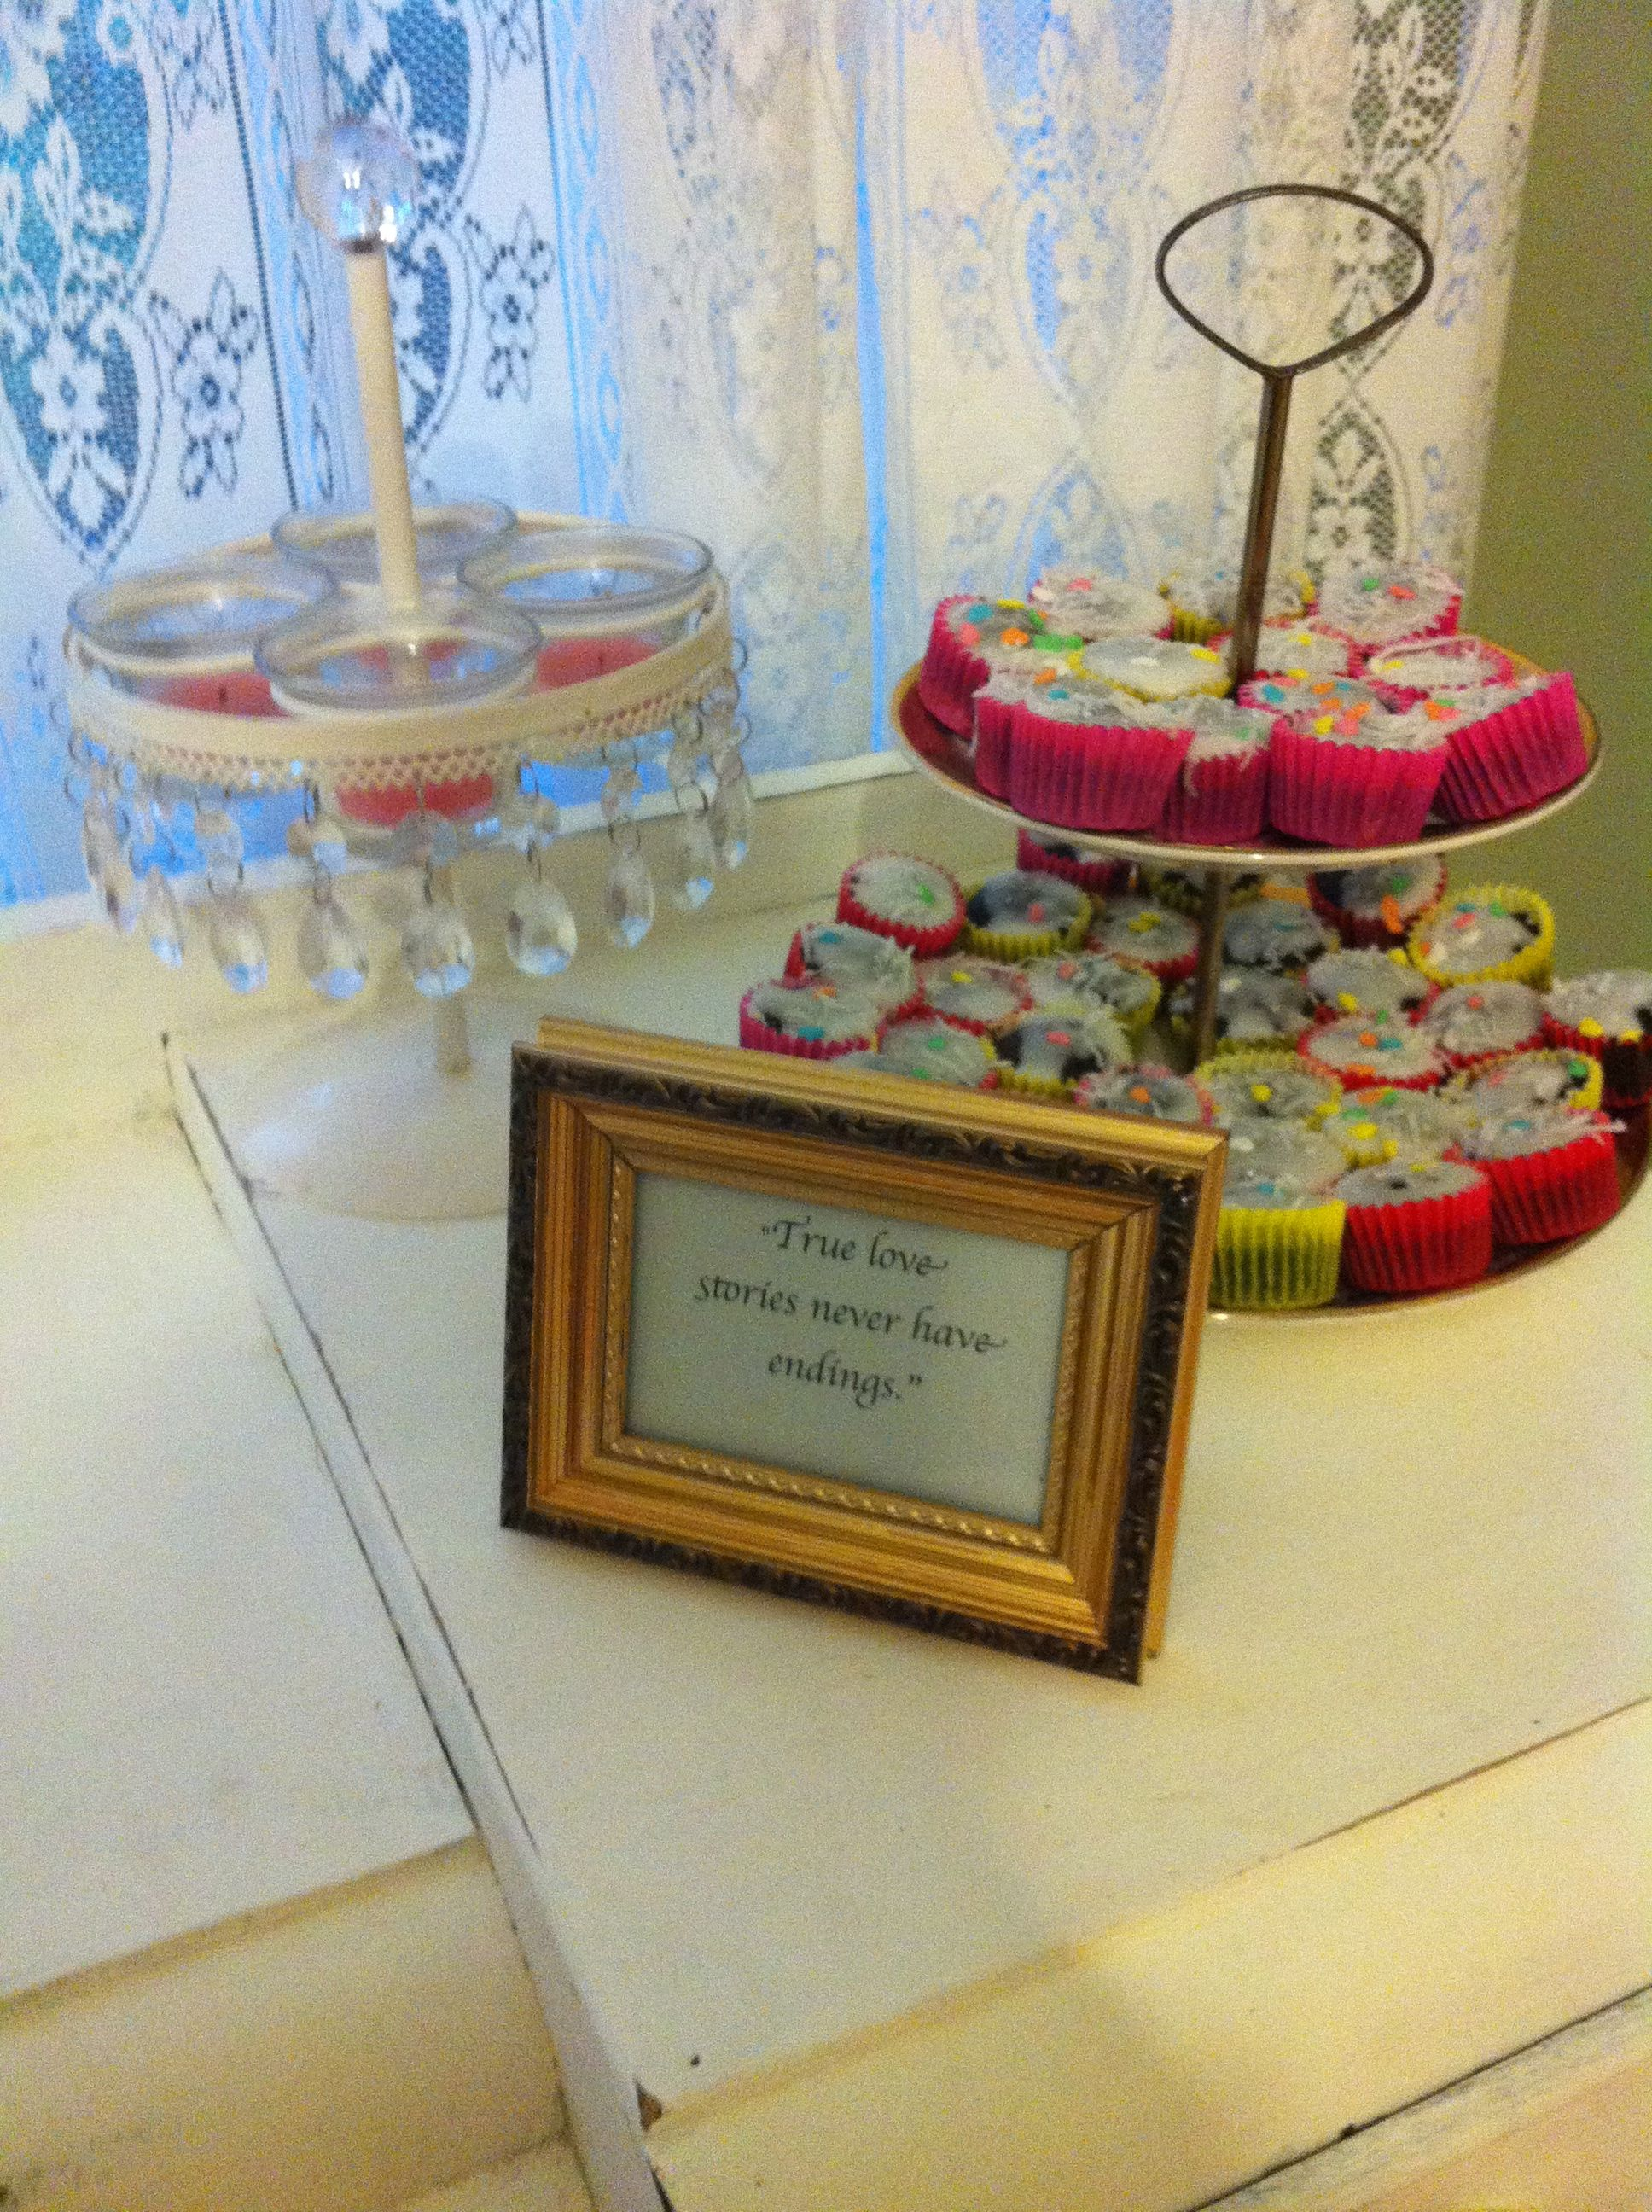 25th Wedding Anniversary Gifts Pinterest : Pin by Taylor Watkins on 25th Wedding Anniversary Ideas Pinterest